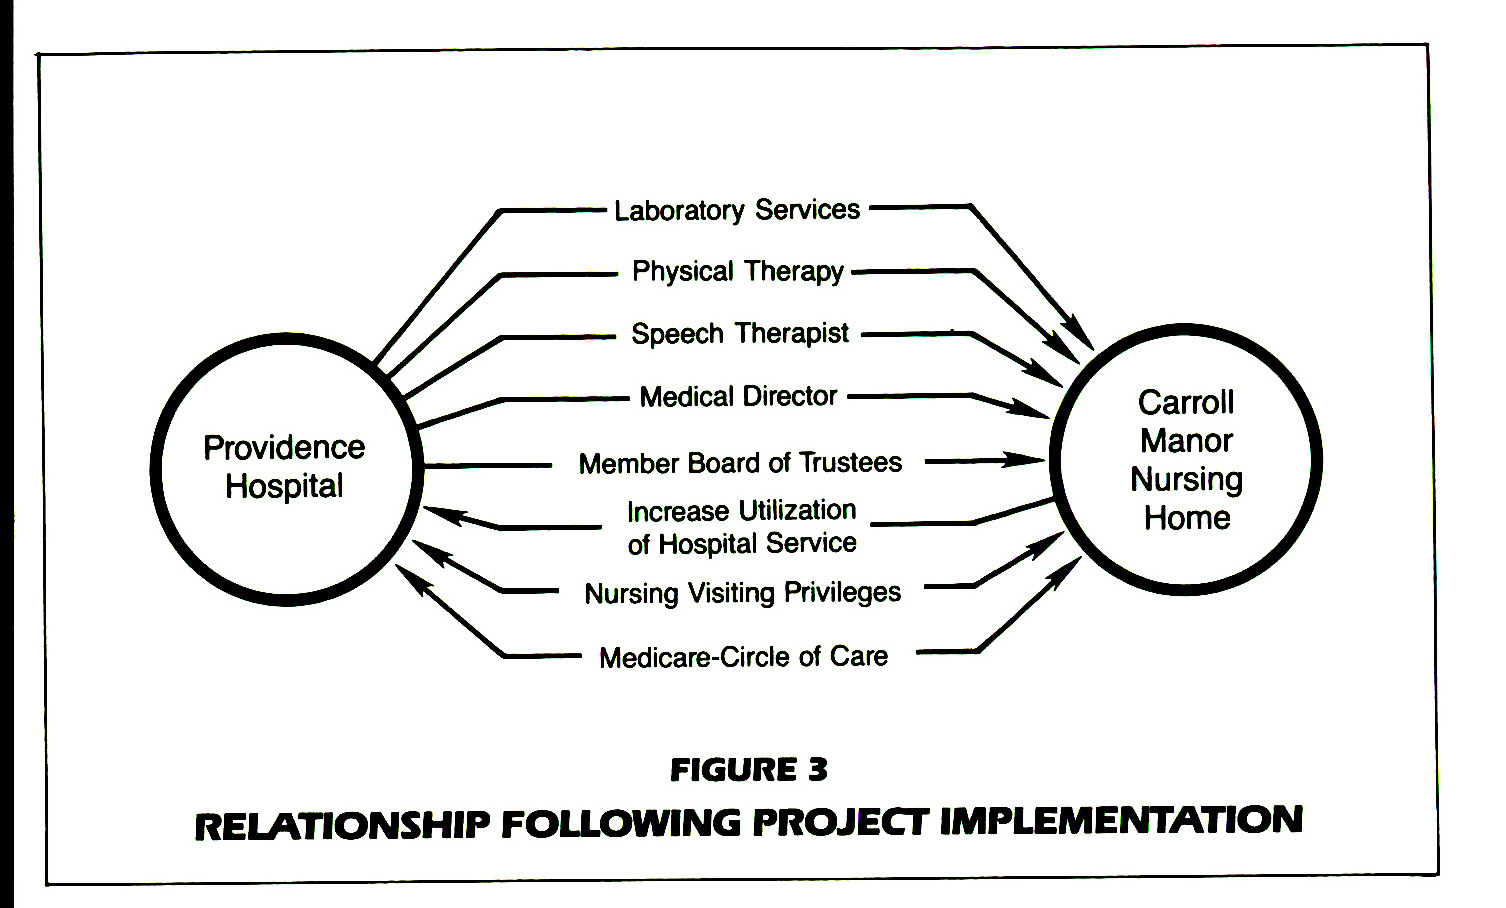 FIGURE 3RELATIONSHIP FOLLOWING PROJECT IMPLEMENTATION